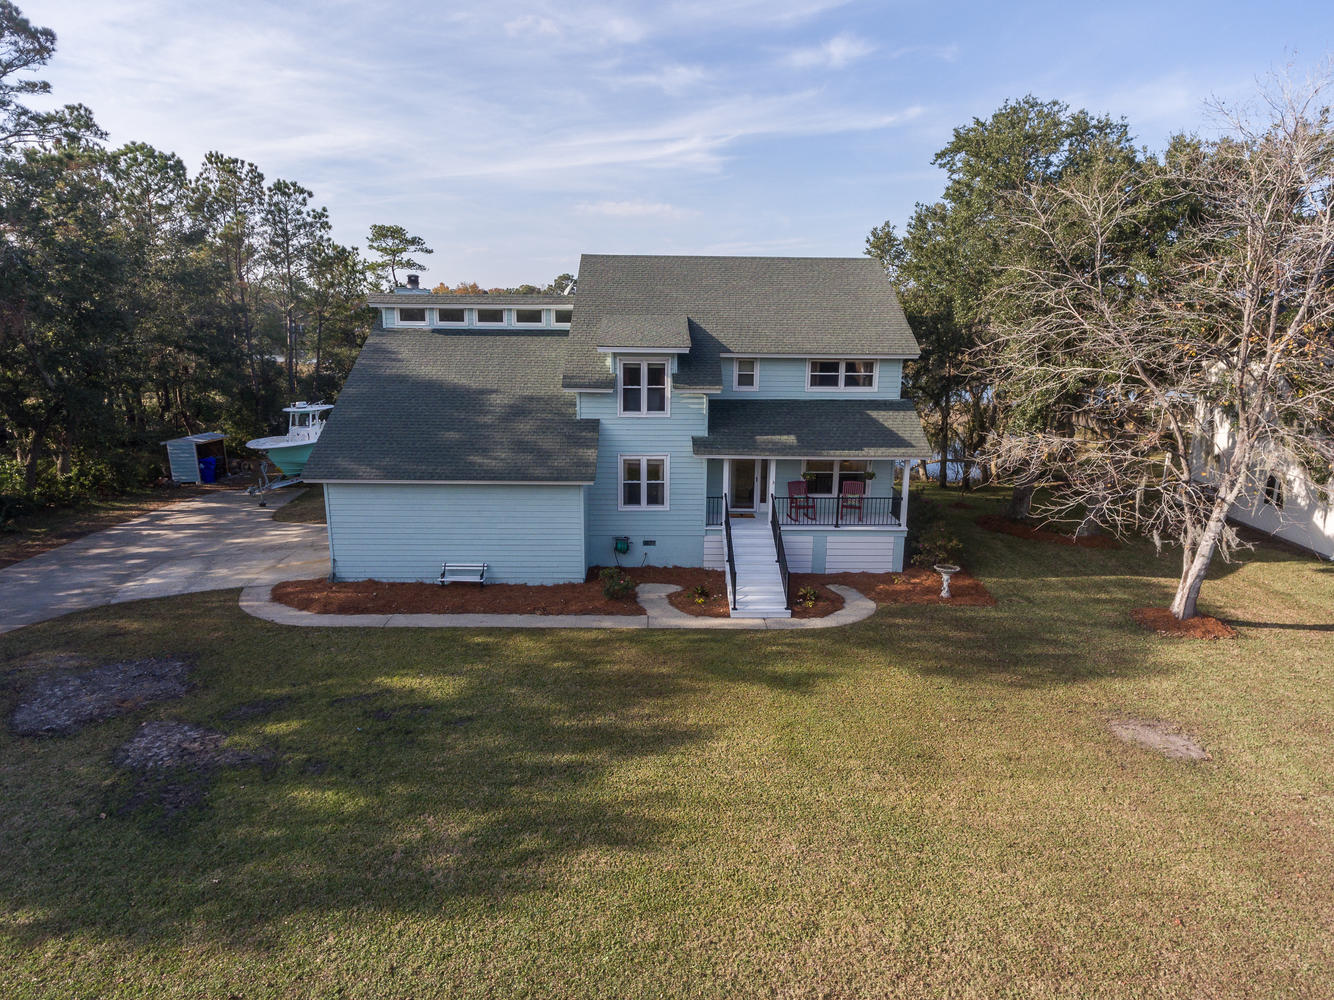 Wakendaw Manor Homes For Sale - 1200 Manor, Mount Pleasant, SC - 43